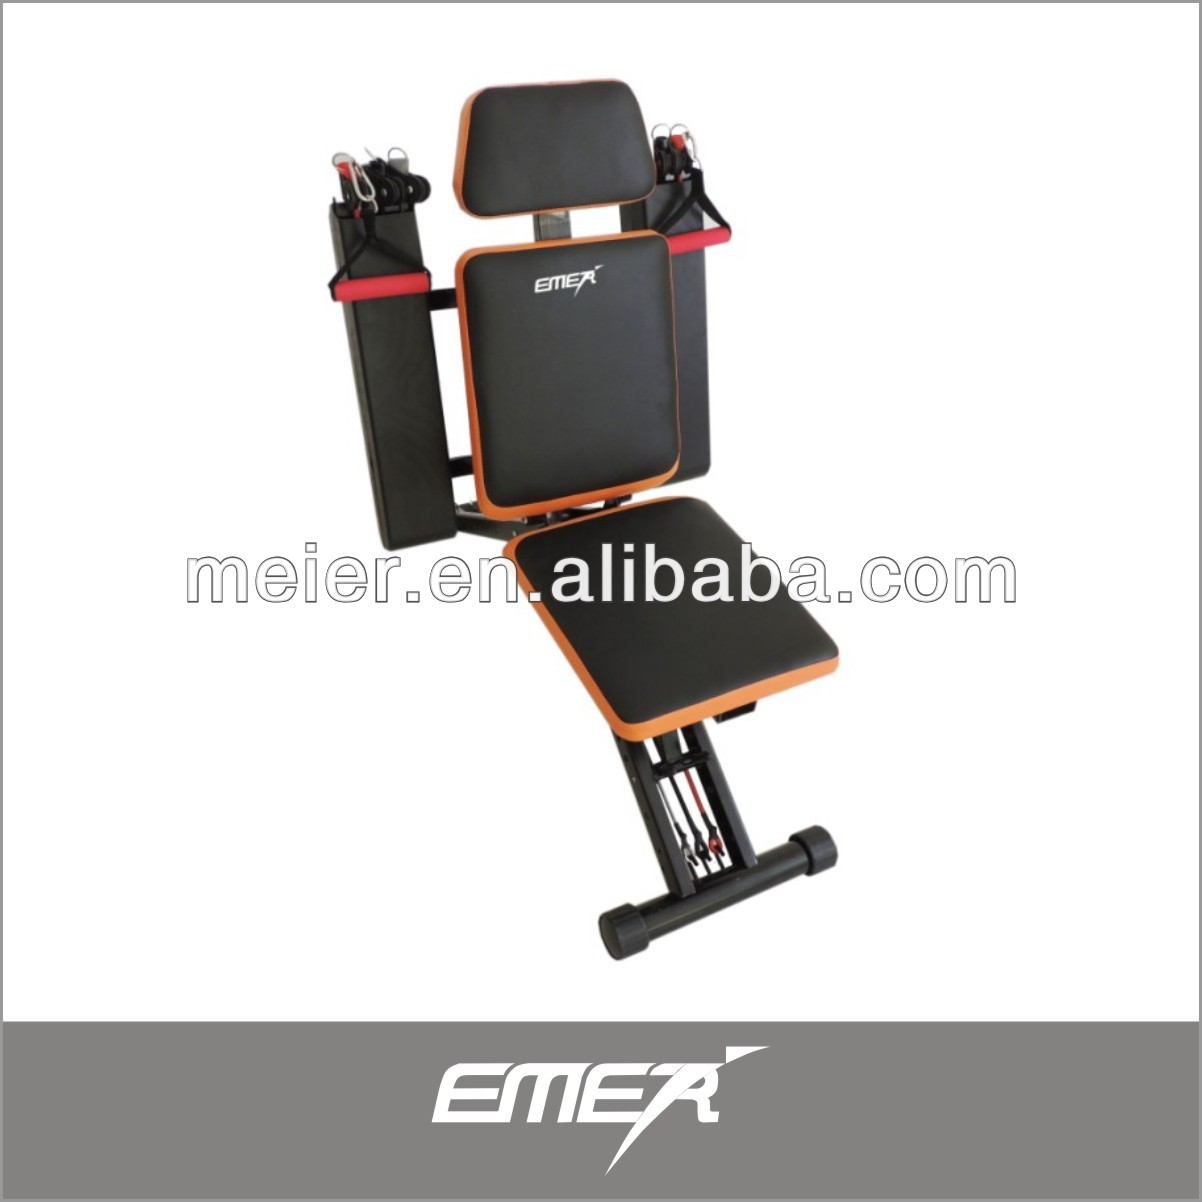 IMPROVED MODEL AB EXERCISE,TOTAL FLEX CHAIR,TOTAL FLEX